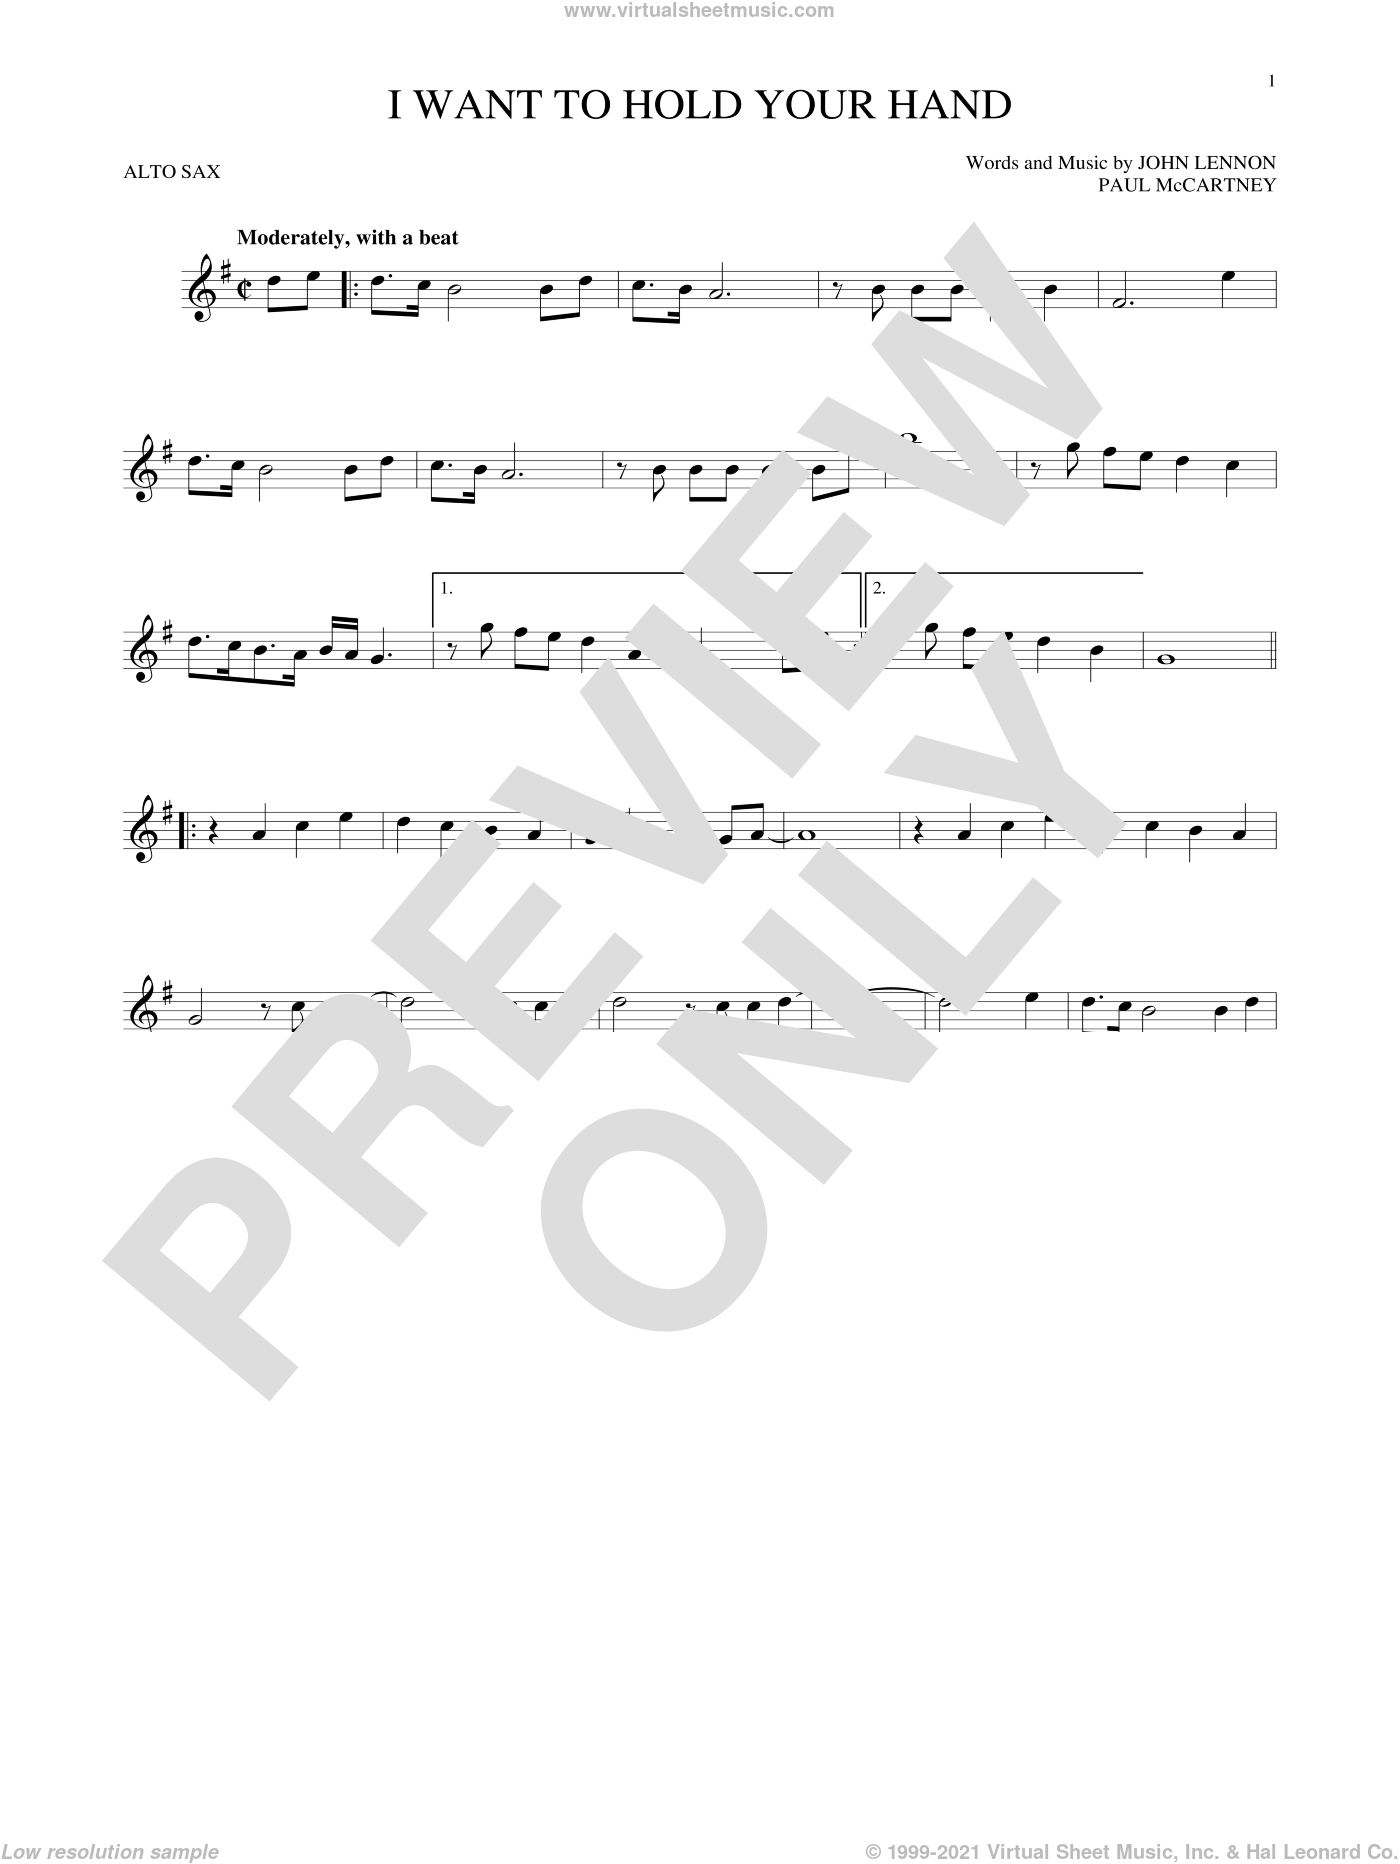 I Want To Hold Your Hand sheet music for alto saxophone solo by The Beatles, John Lennon and Paul McCartney, intermediate skill level